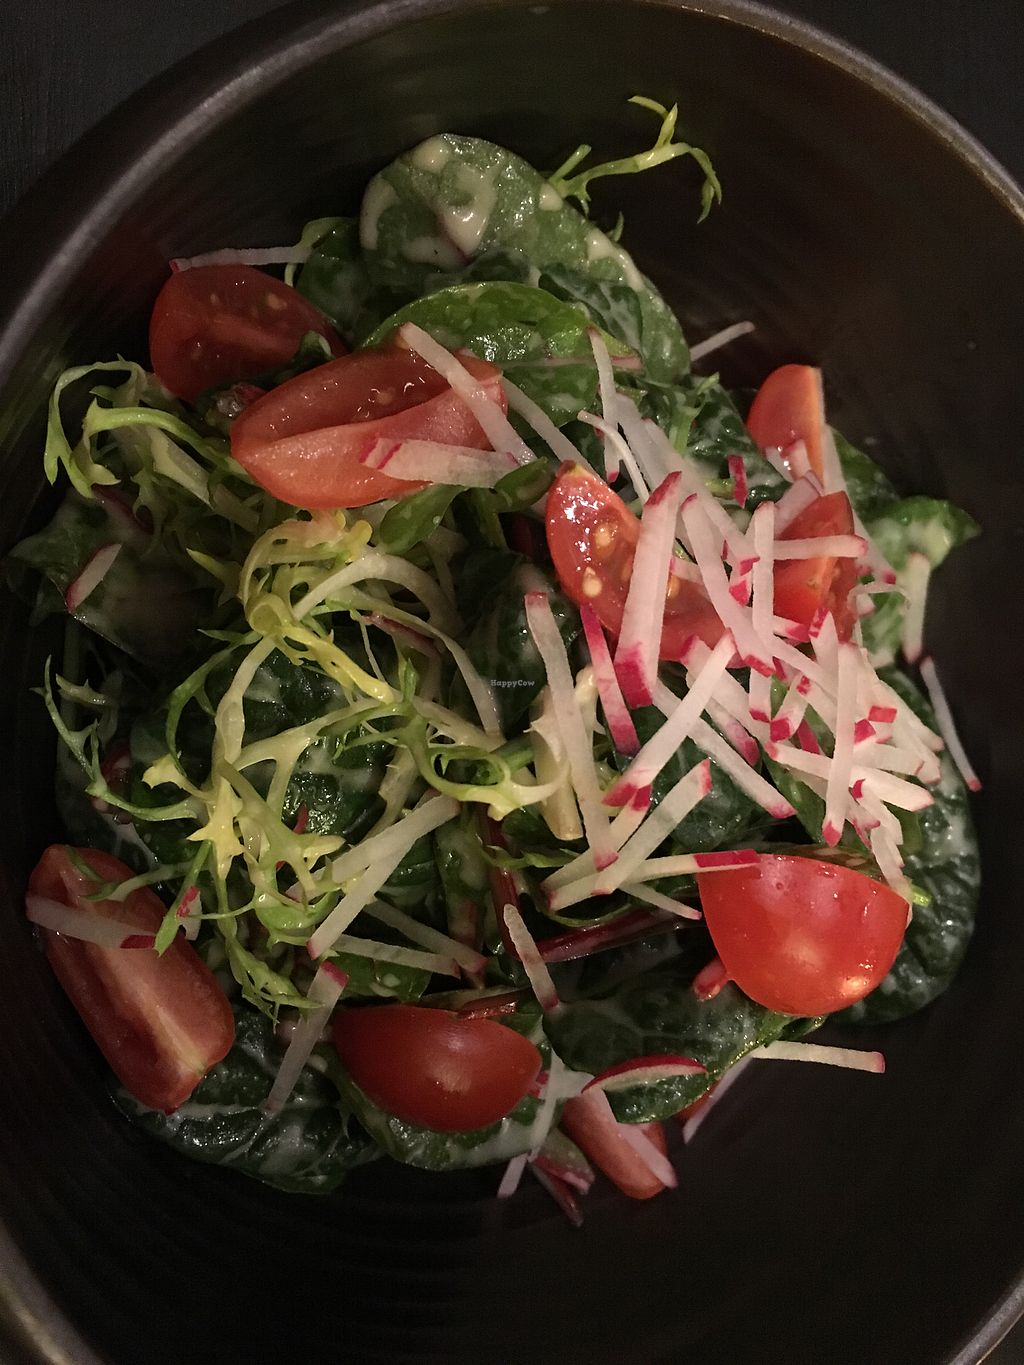 """Photo of PUUR!  by <a href=""""/members/profile/Kleeblatt"""">Kleeblatt</a> <br/>Baby Spinach Salad <br/> January 23, 2018  - <a href='/contact/abuse/image/85651/350164'>Report</a>"""